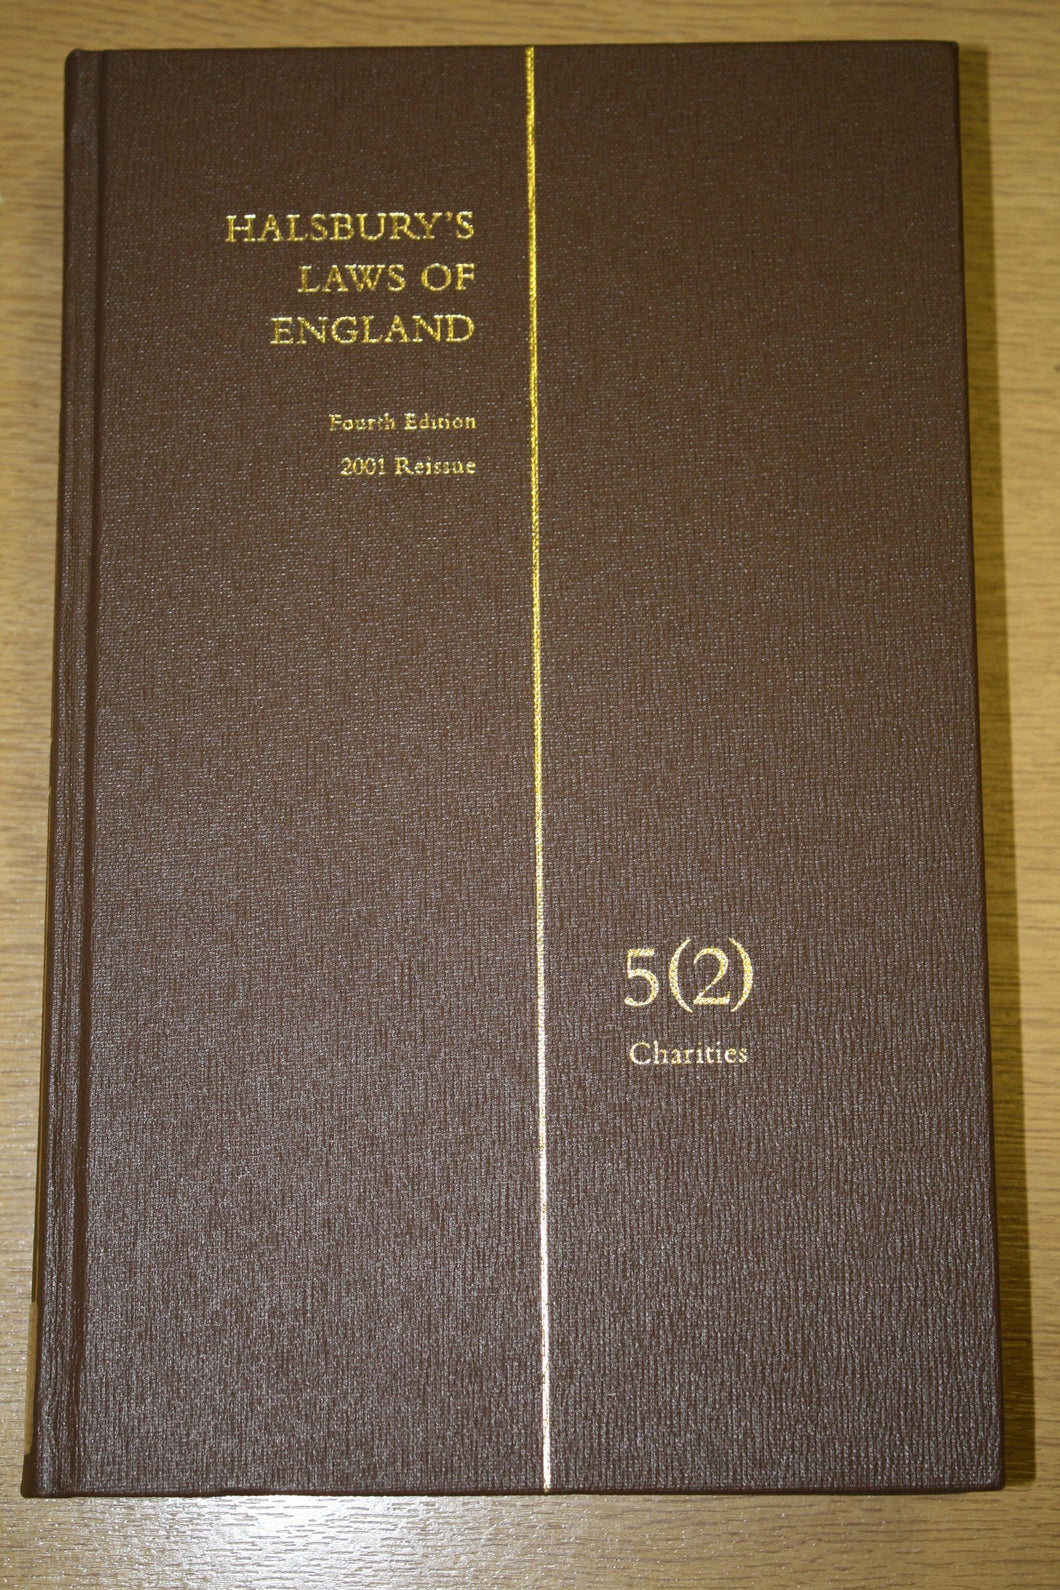 HALSBURY'S LAWS OF ENGLAND VOLUME 5(2)